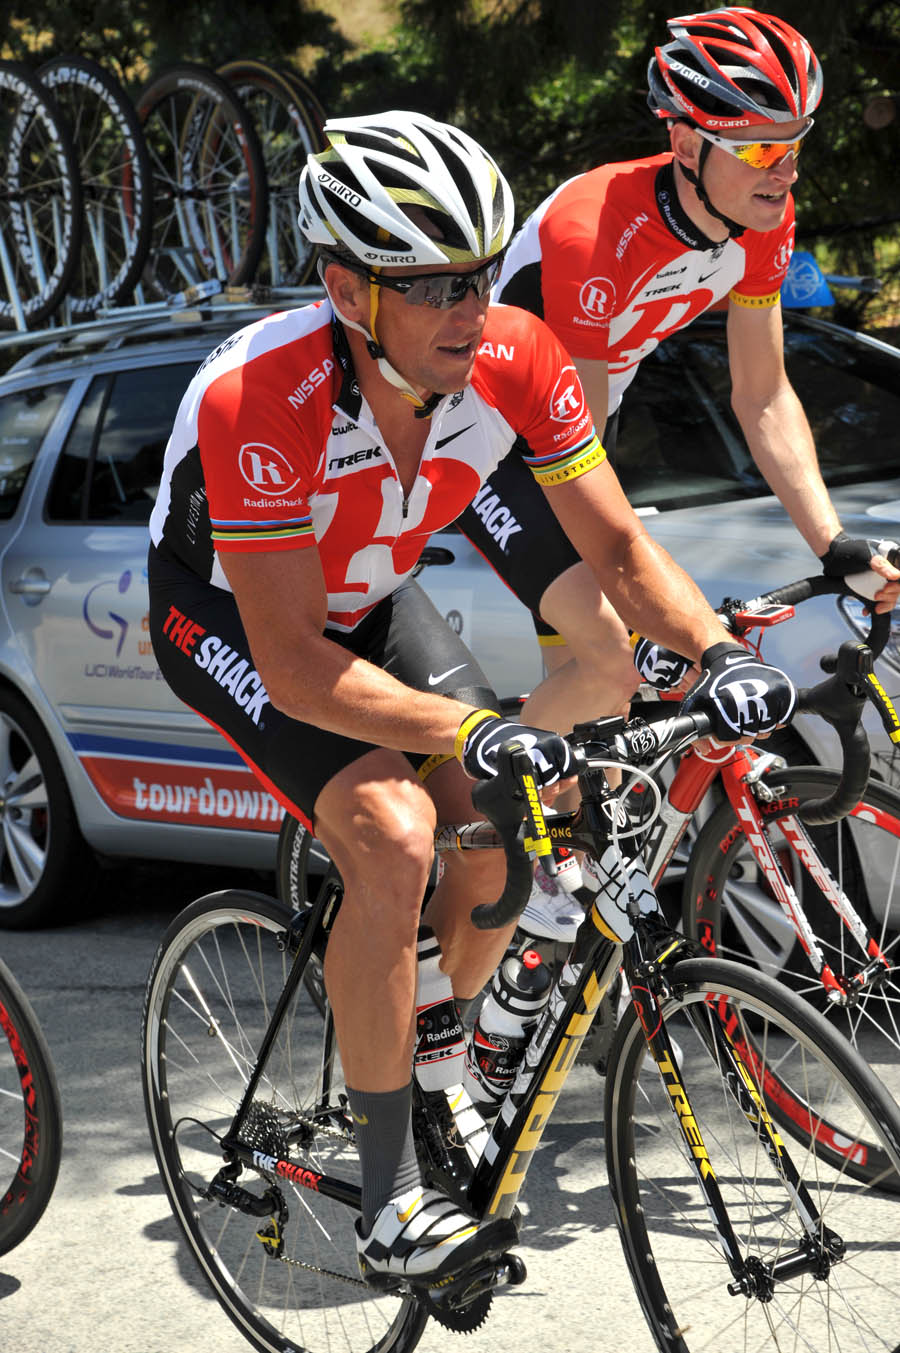 Lance Armstrong and RadioShack get ready for 2011 Tour Down Under in Adelaide